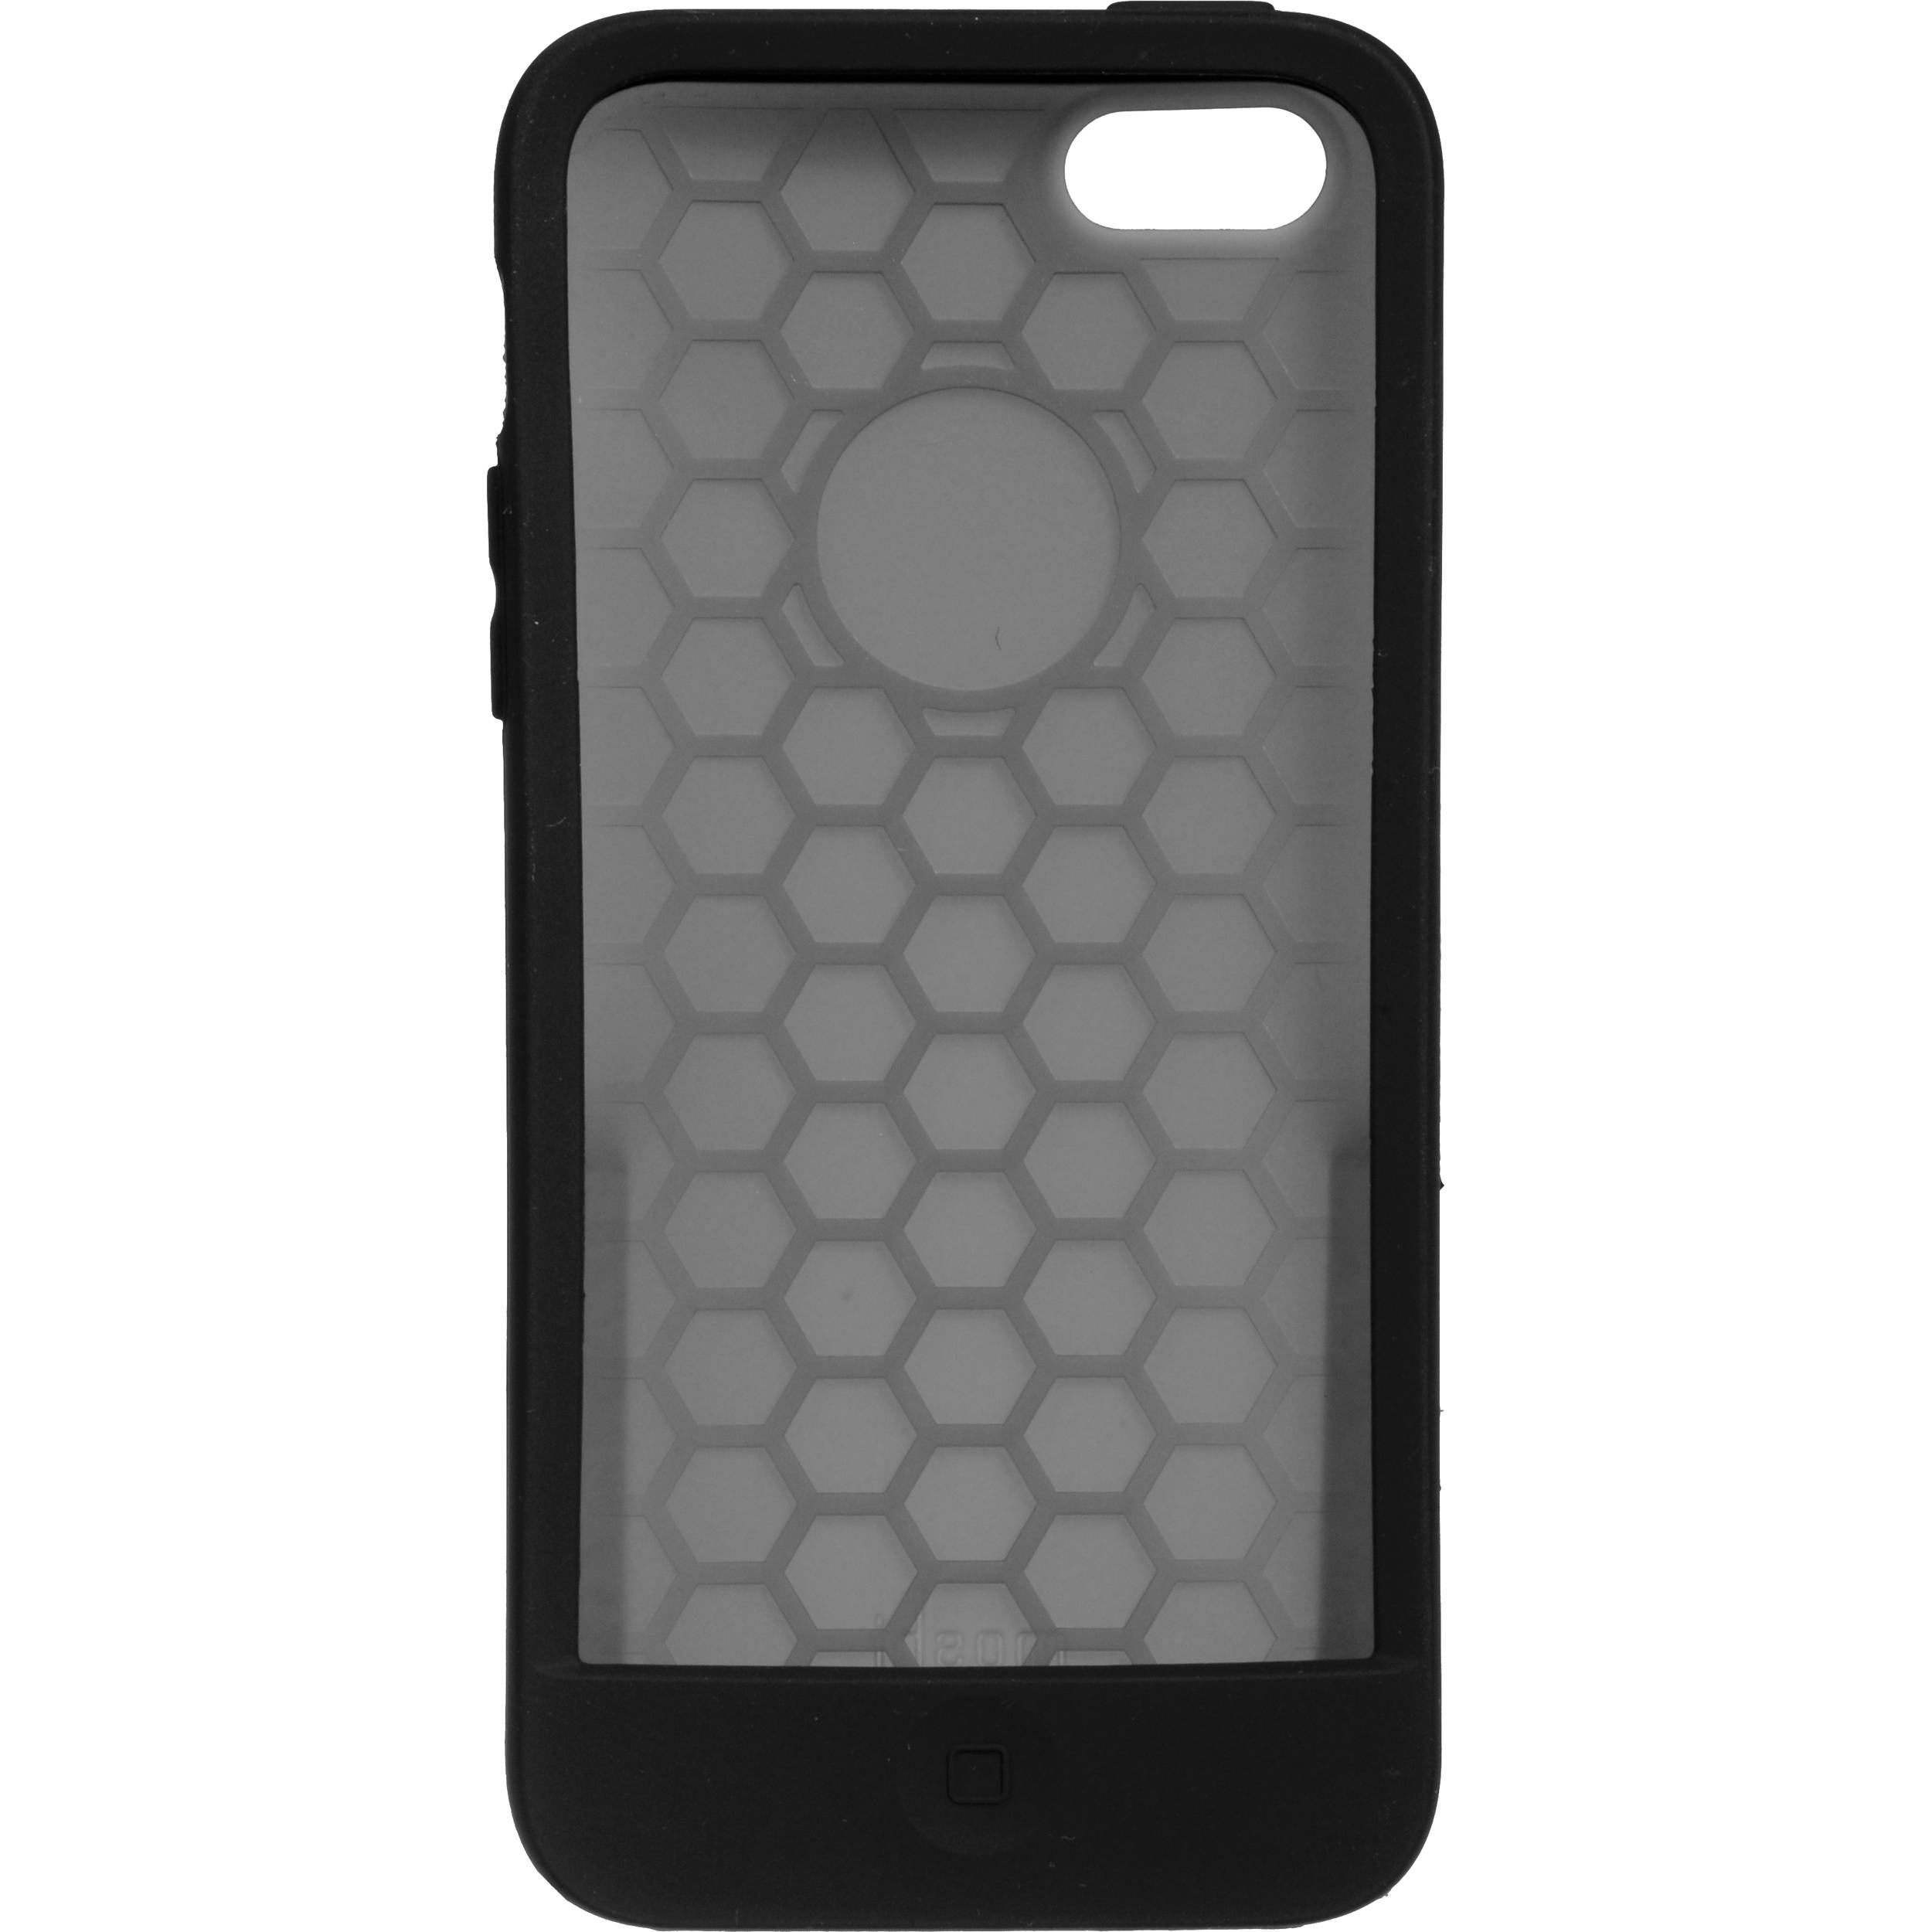 cheap for discount 3fd8c 73d4f Moshi Origo Case for iPhone 5c (Graphite Black)